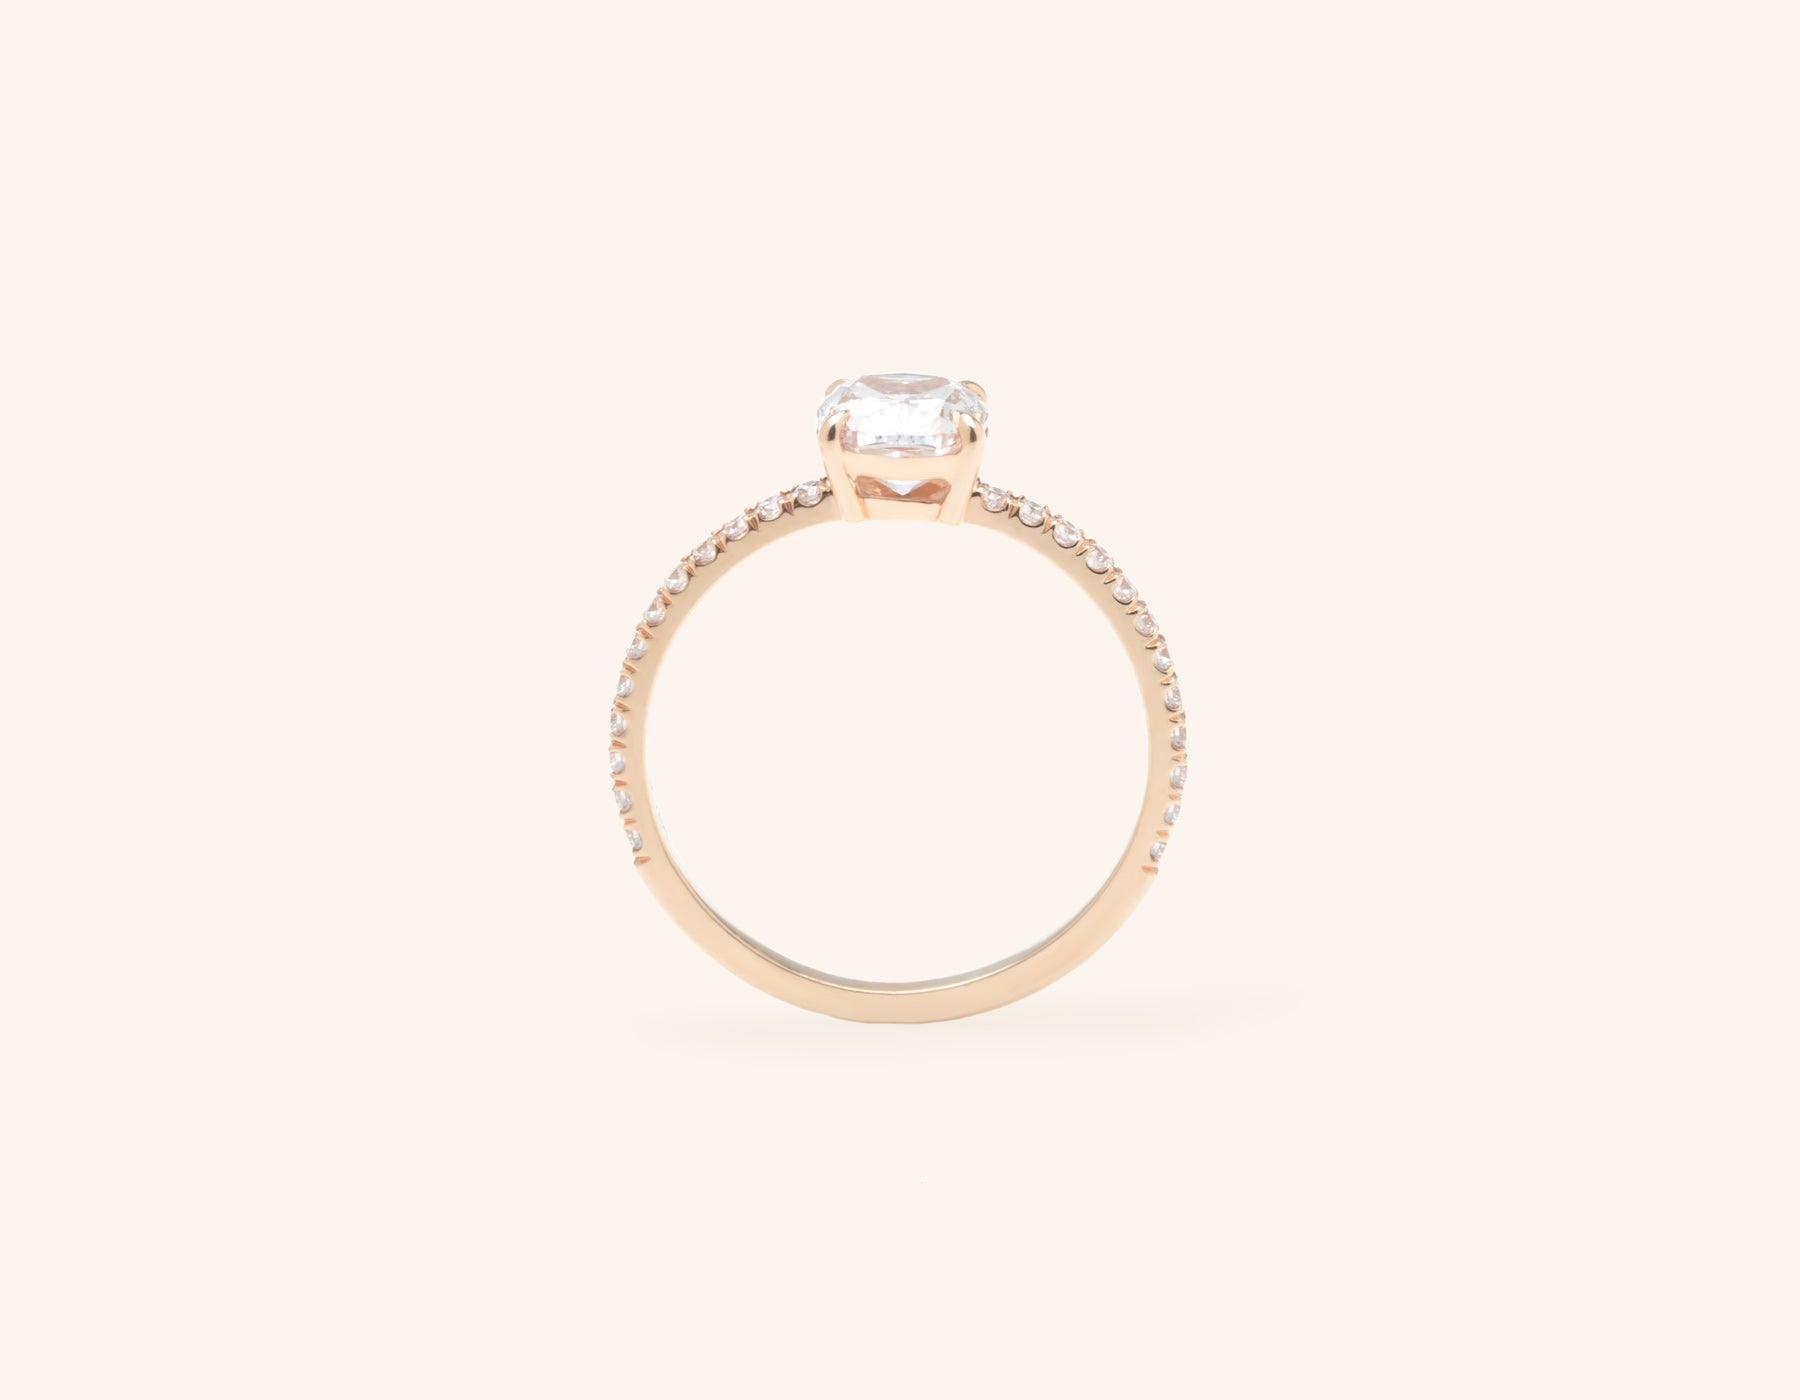 Vrai and Oro modern classic The Cushion pave diamond engagement ring 18k solid rose gold sustainable jewelry